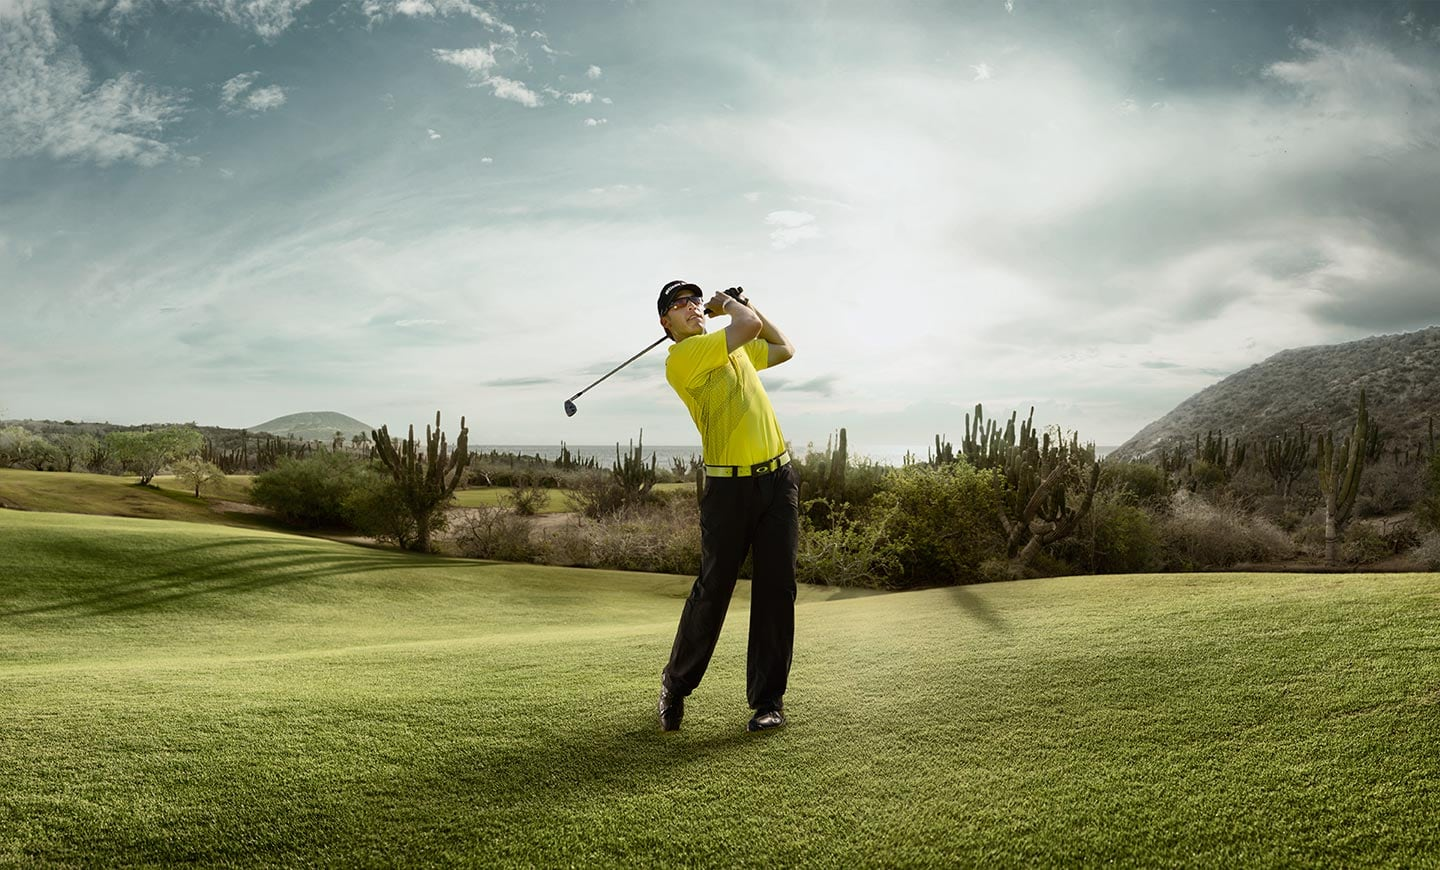 Rod Mclean - male golfer putting the ball